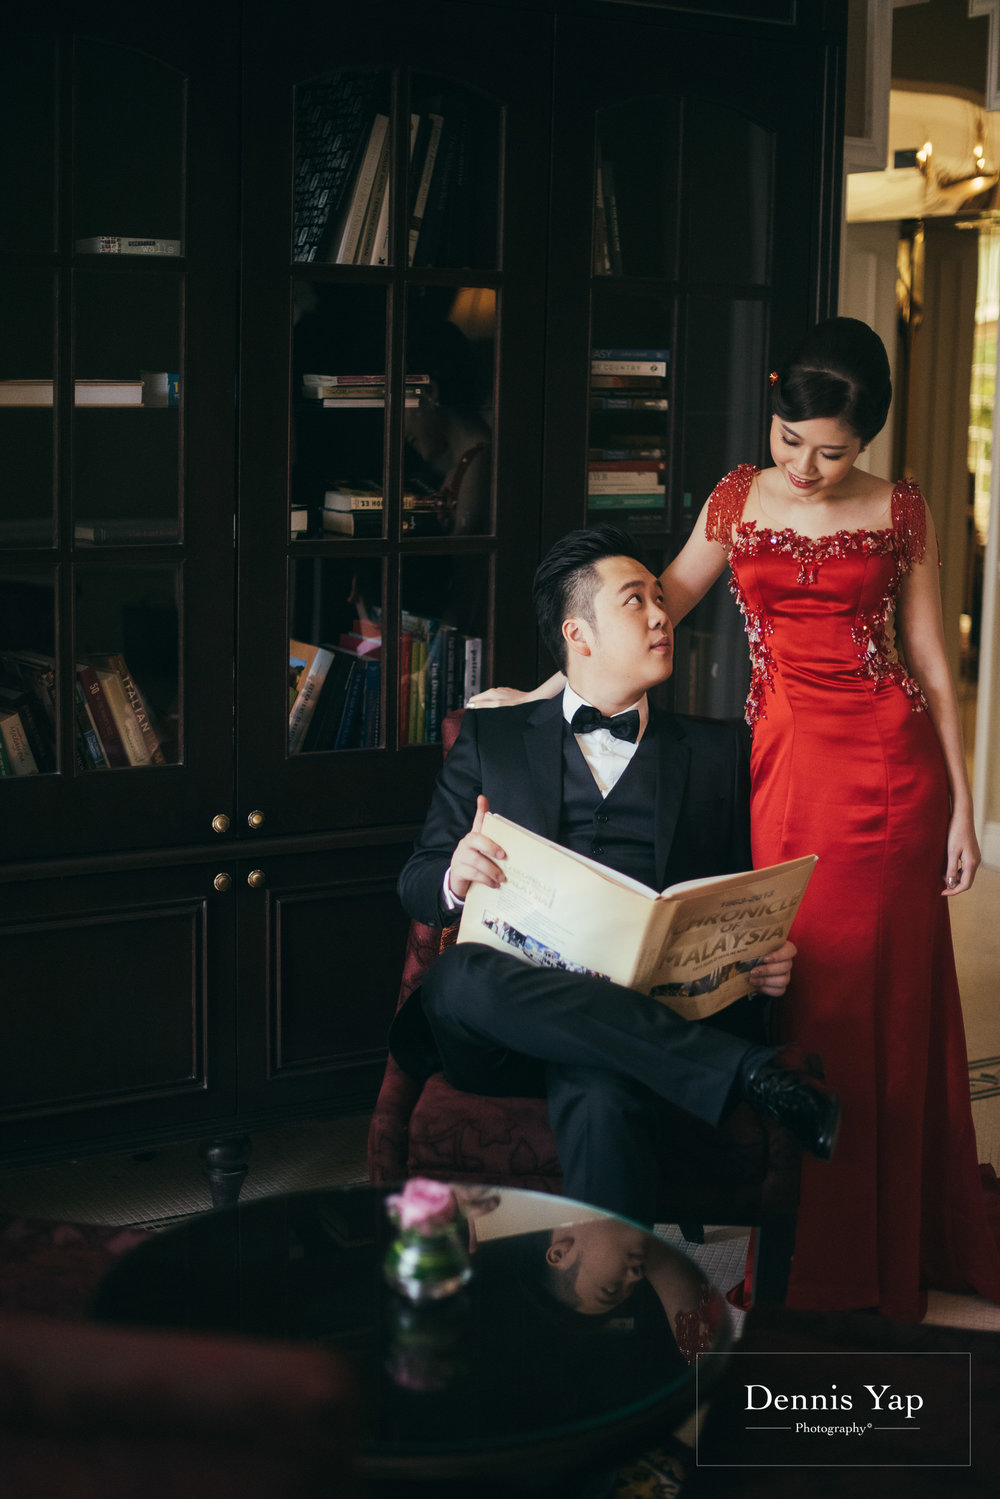 ivan constance pre wedding majestic hotel dennis yap photography luxury style calm serious-9.jpg